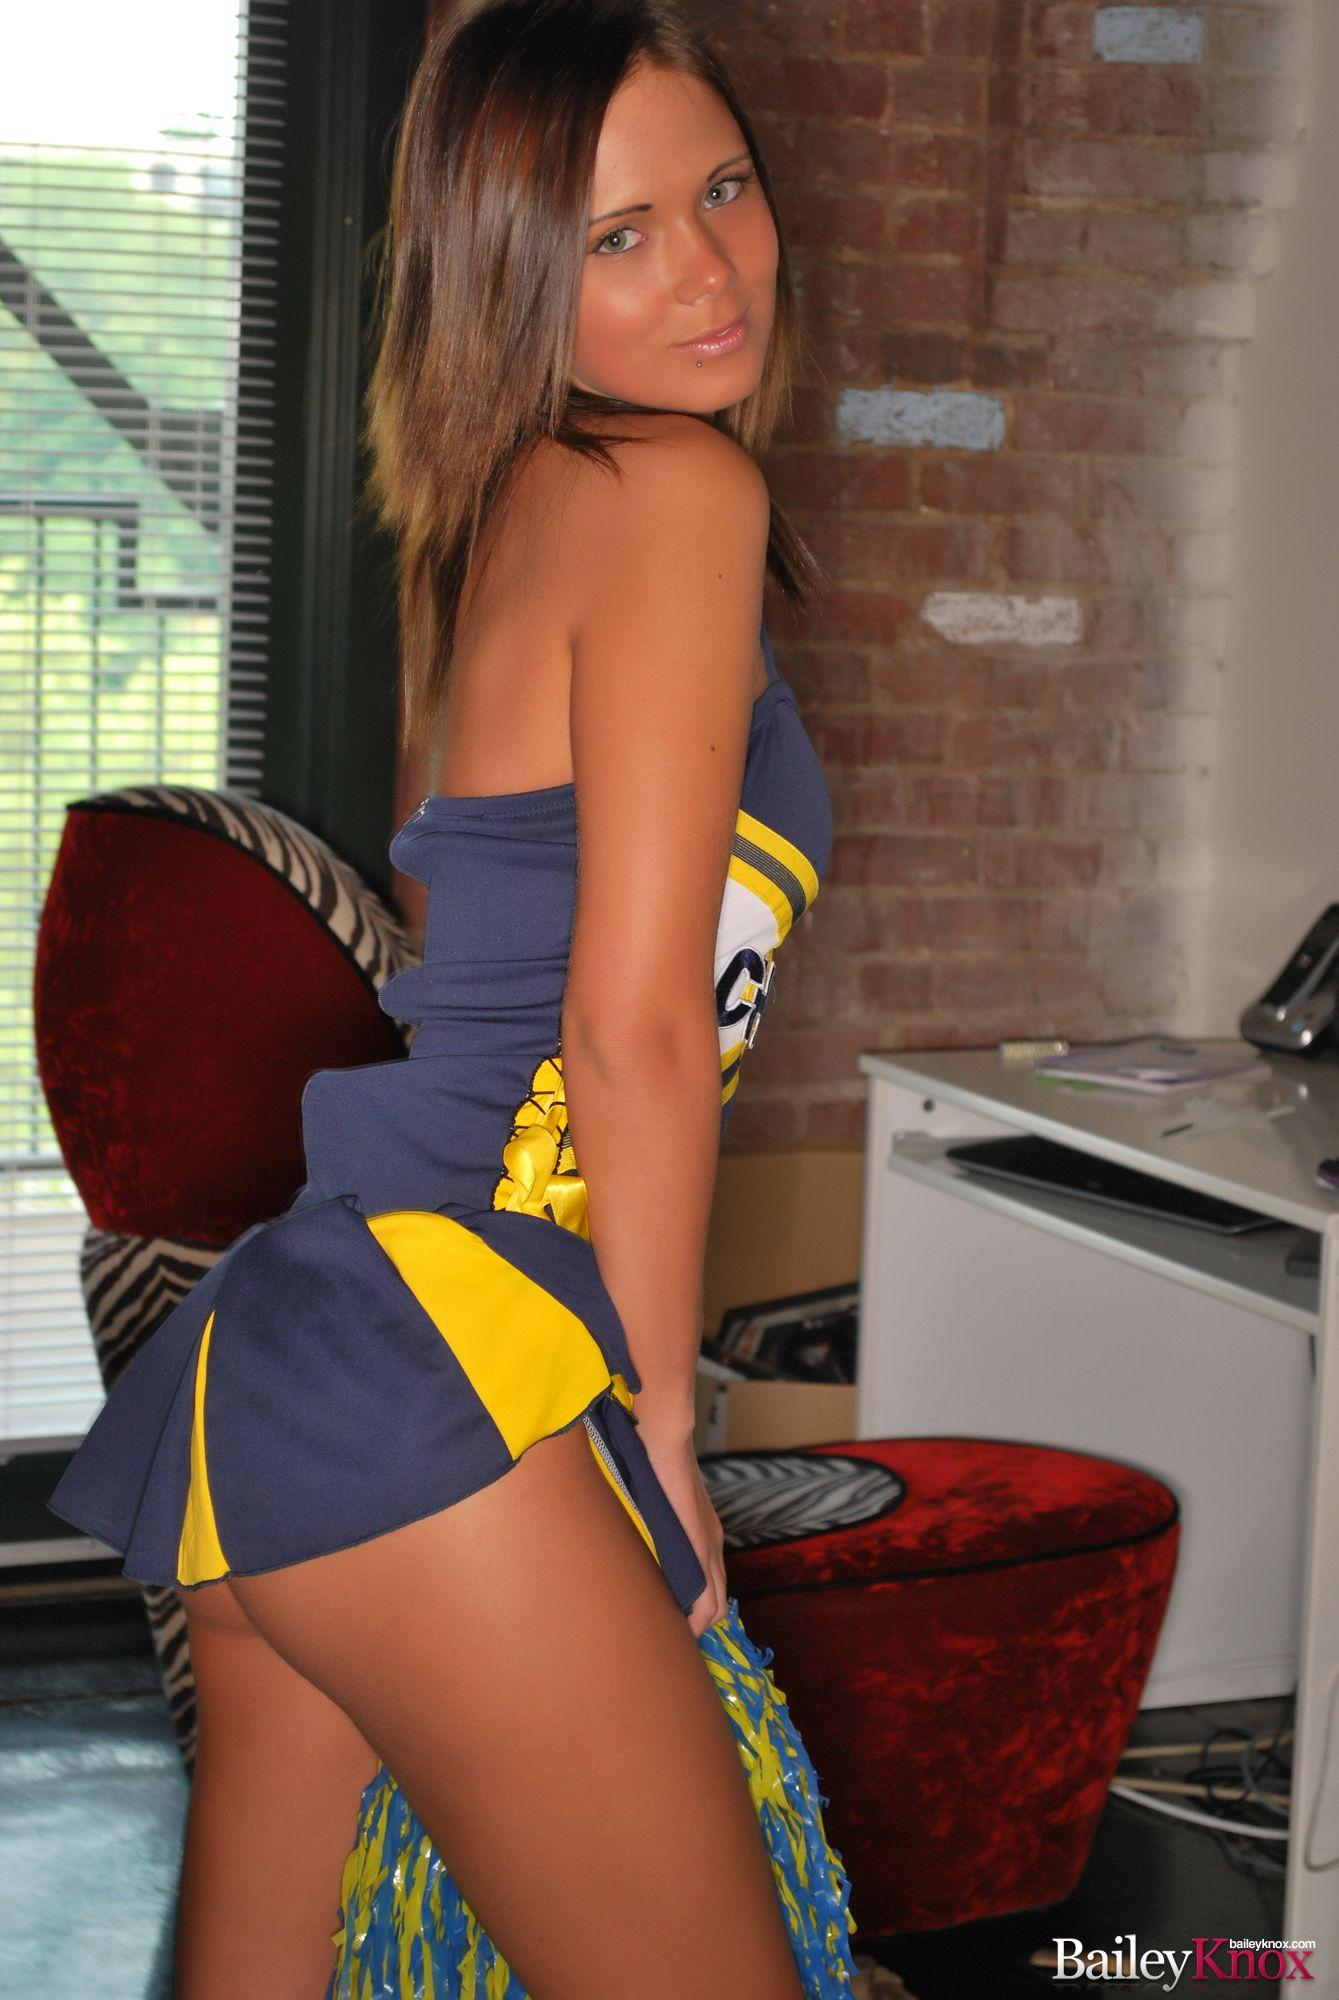 Beautiful Bailey Knox as the charming cheerleader | Daily Girls @ Female Update